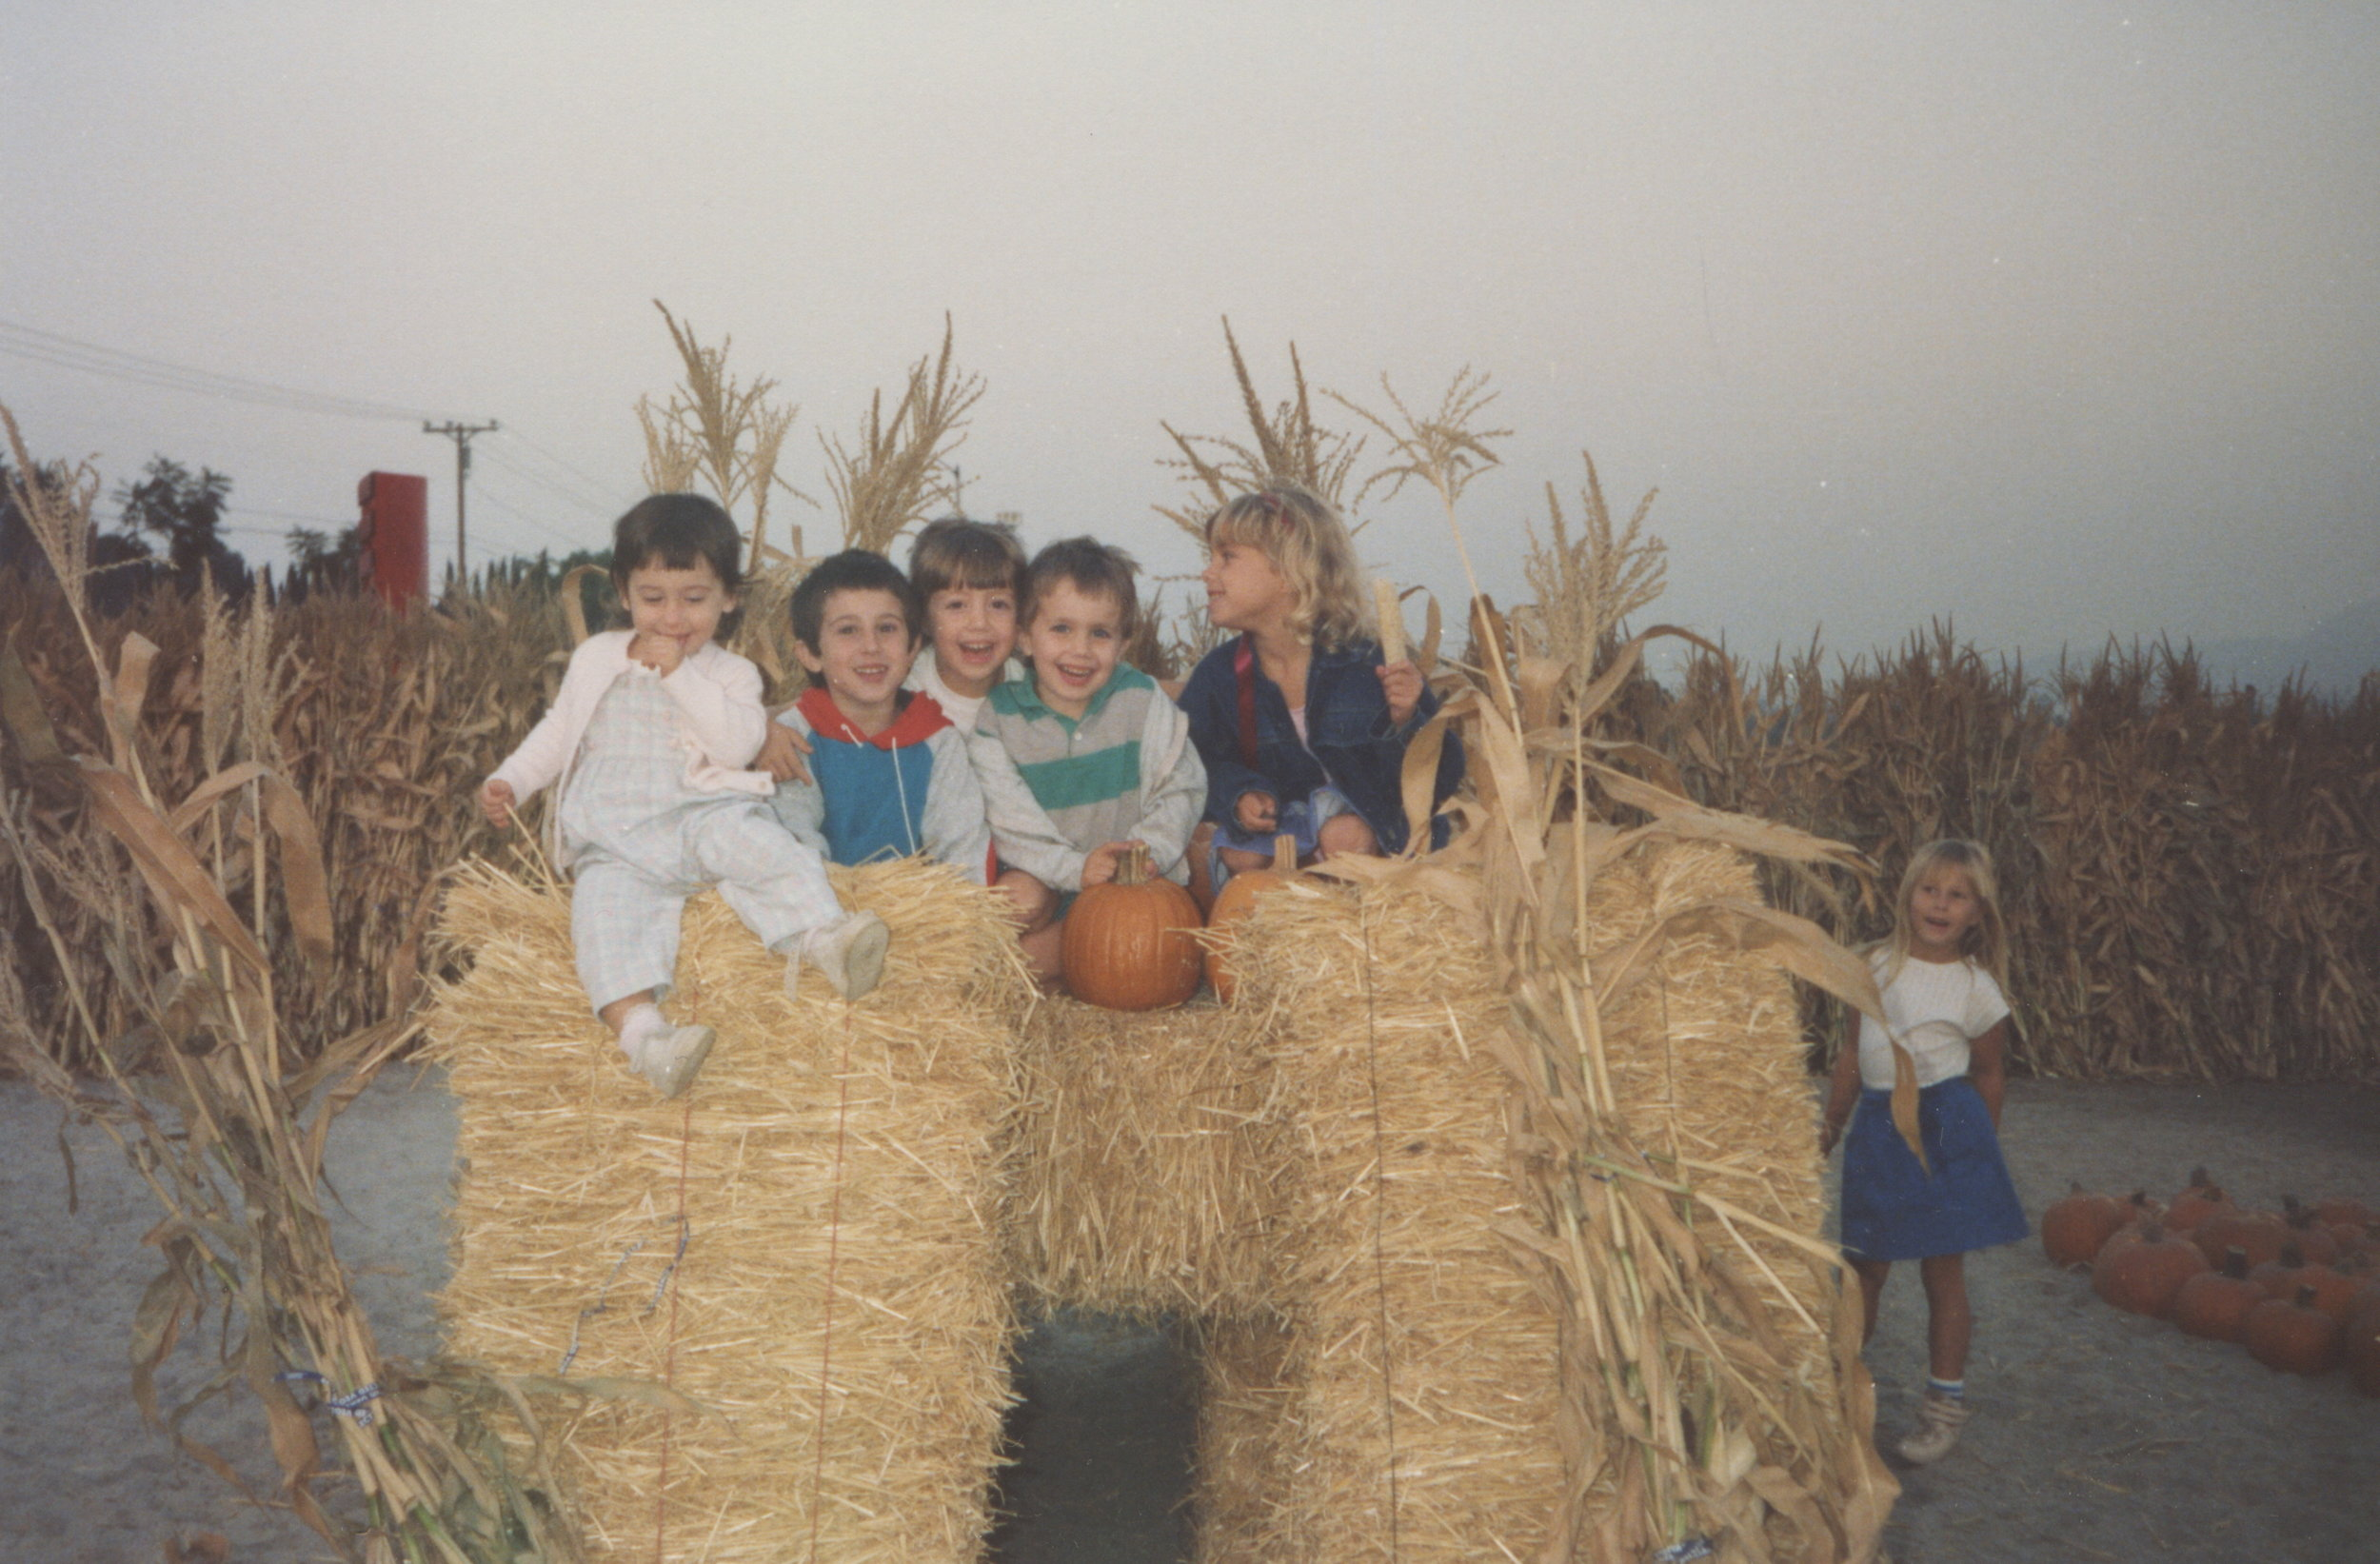 Bryan and I as kids at the pumpkin patch